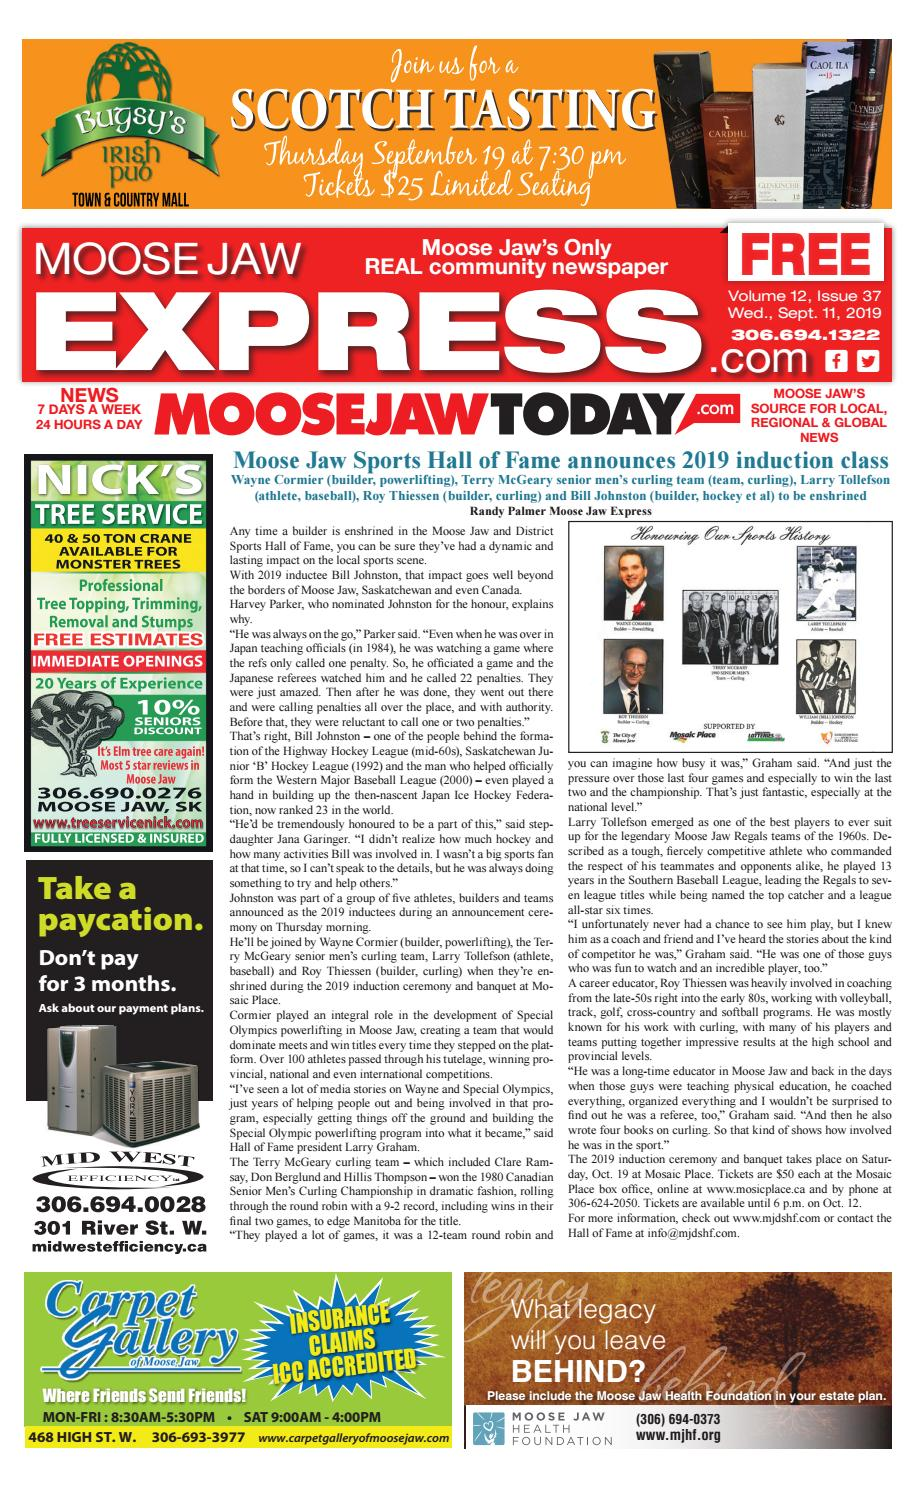 Miraculous Moose Jaw Express September 11Th 2019 By Moose Jaw Express Short Links Chair Design For Home Short Linksinfo